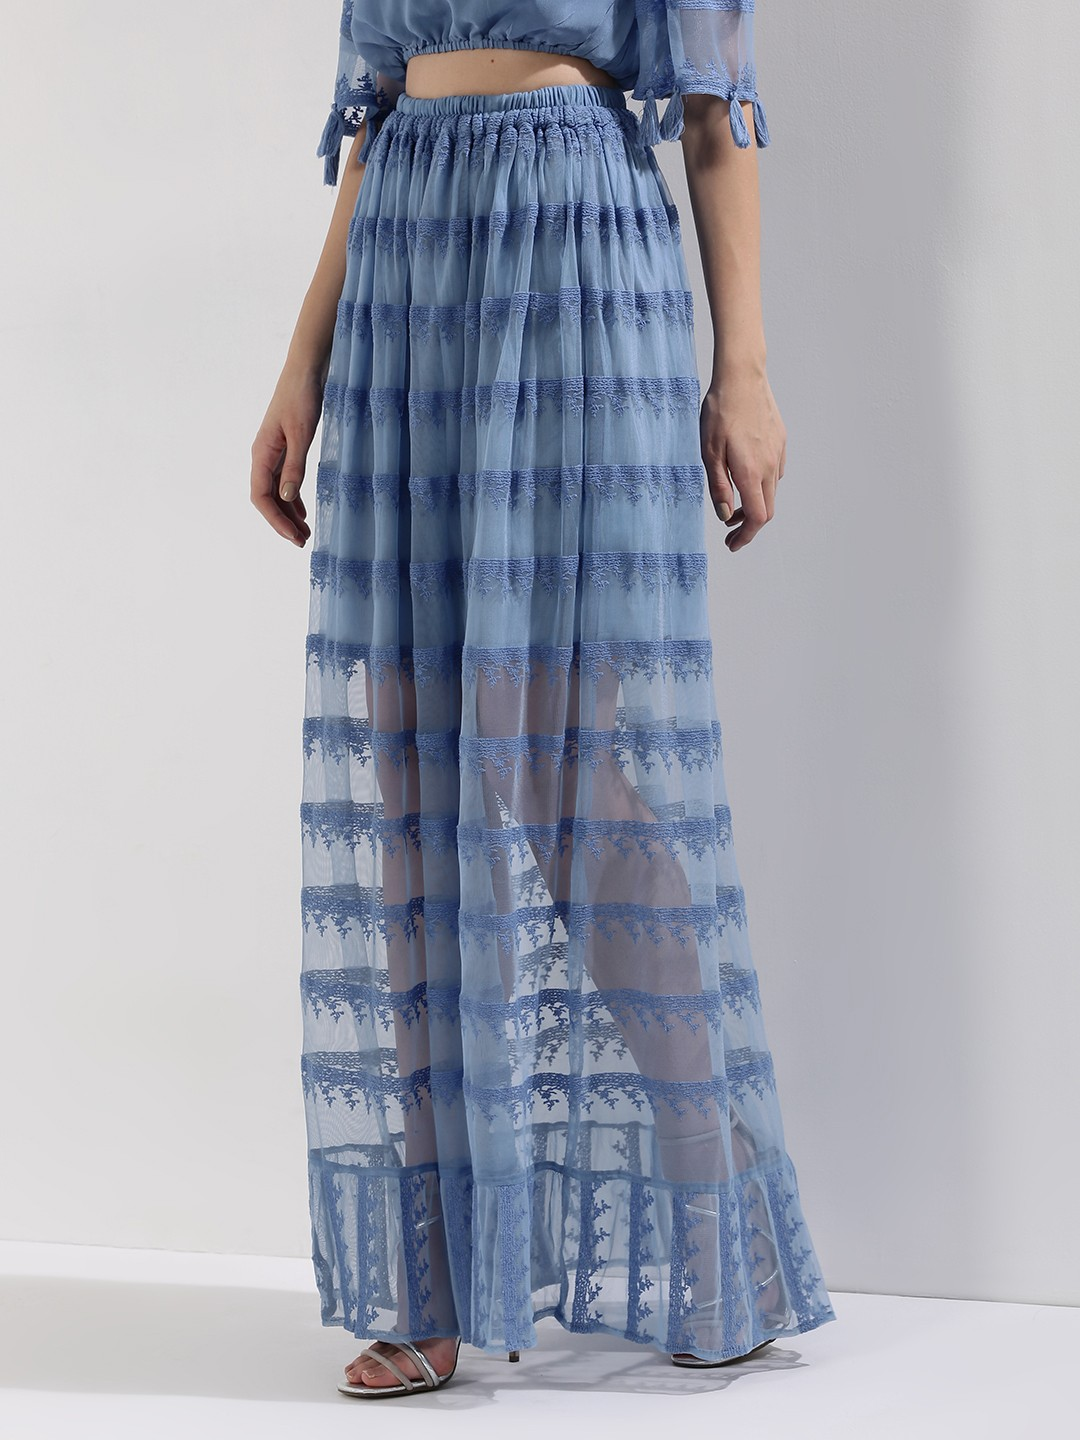 buy rena sheer lace maxi skirt for s